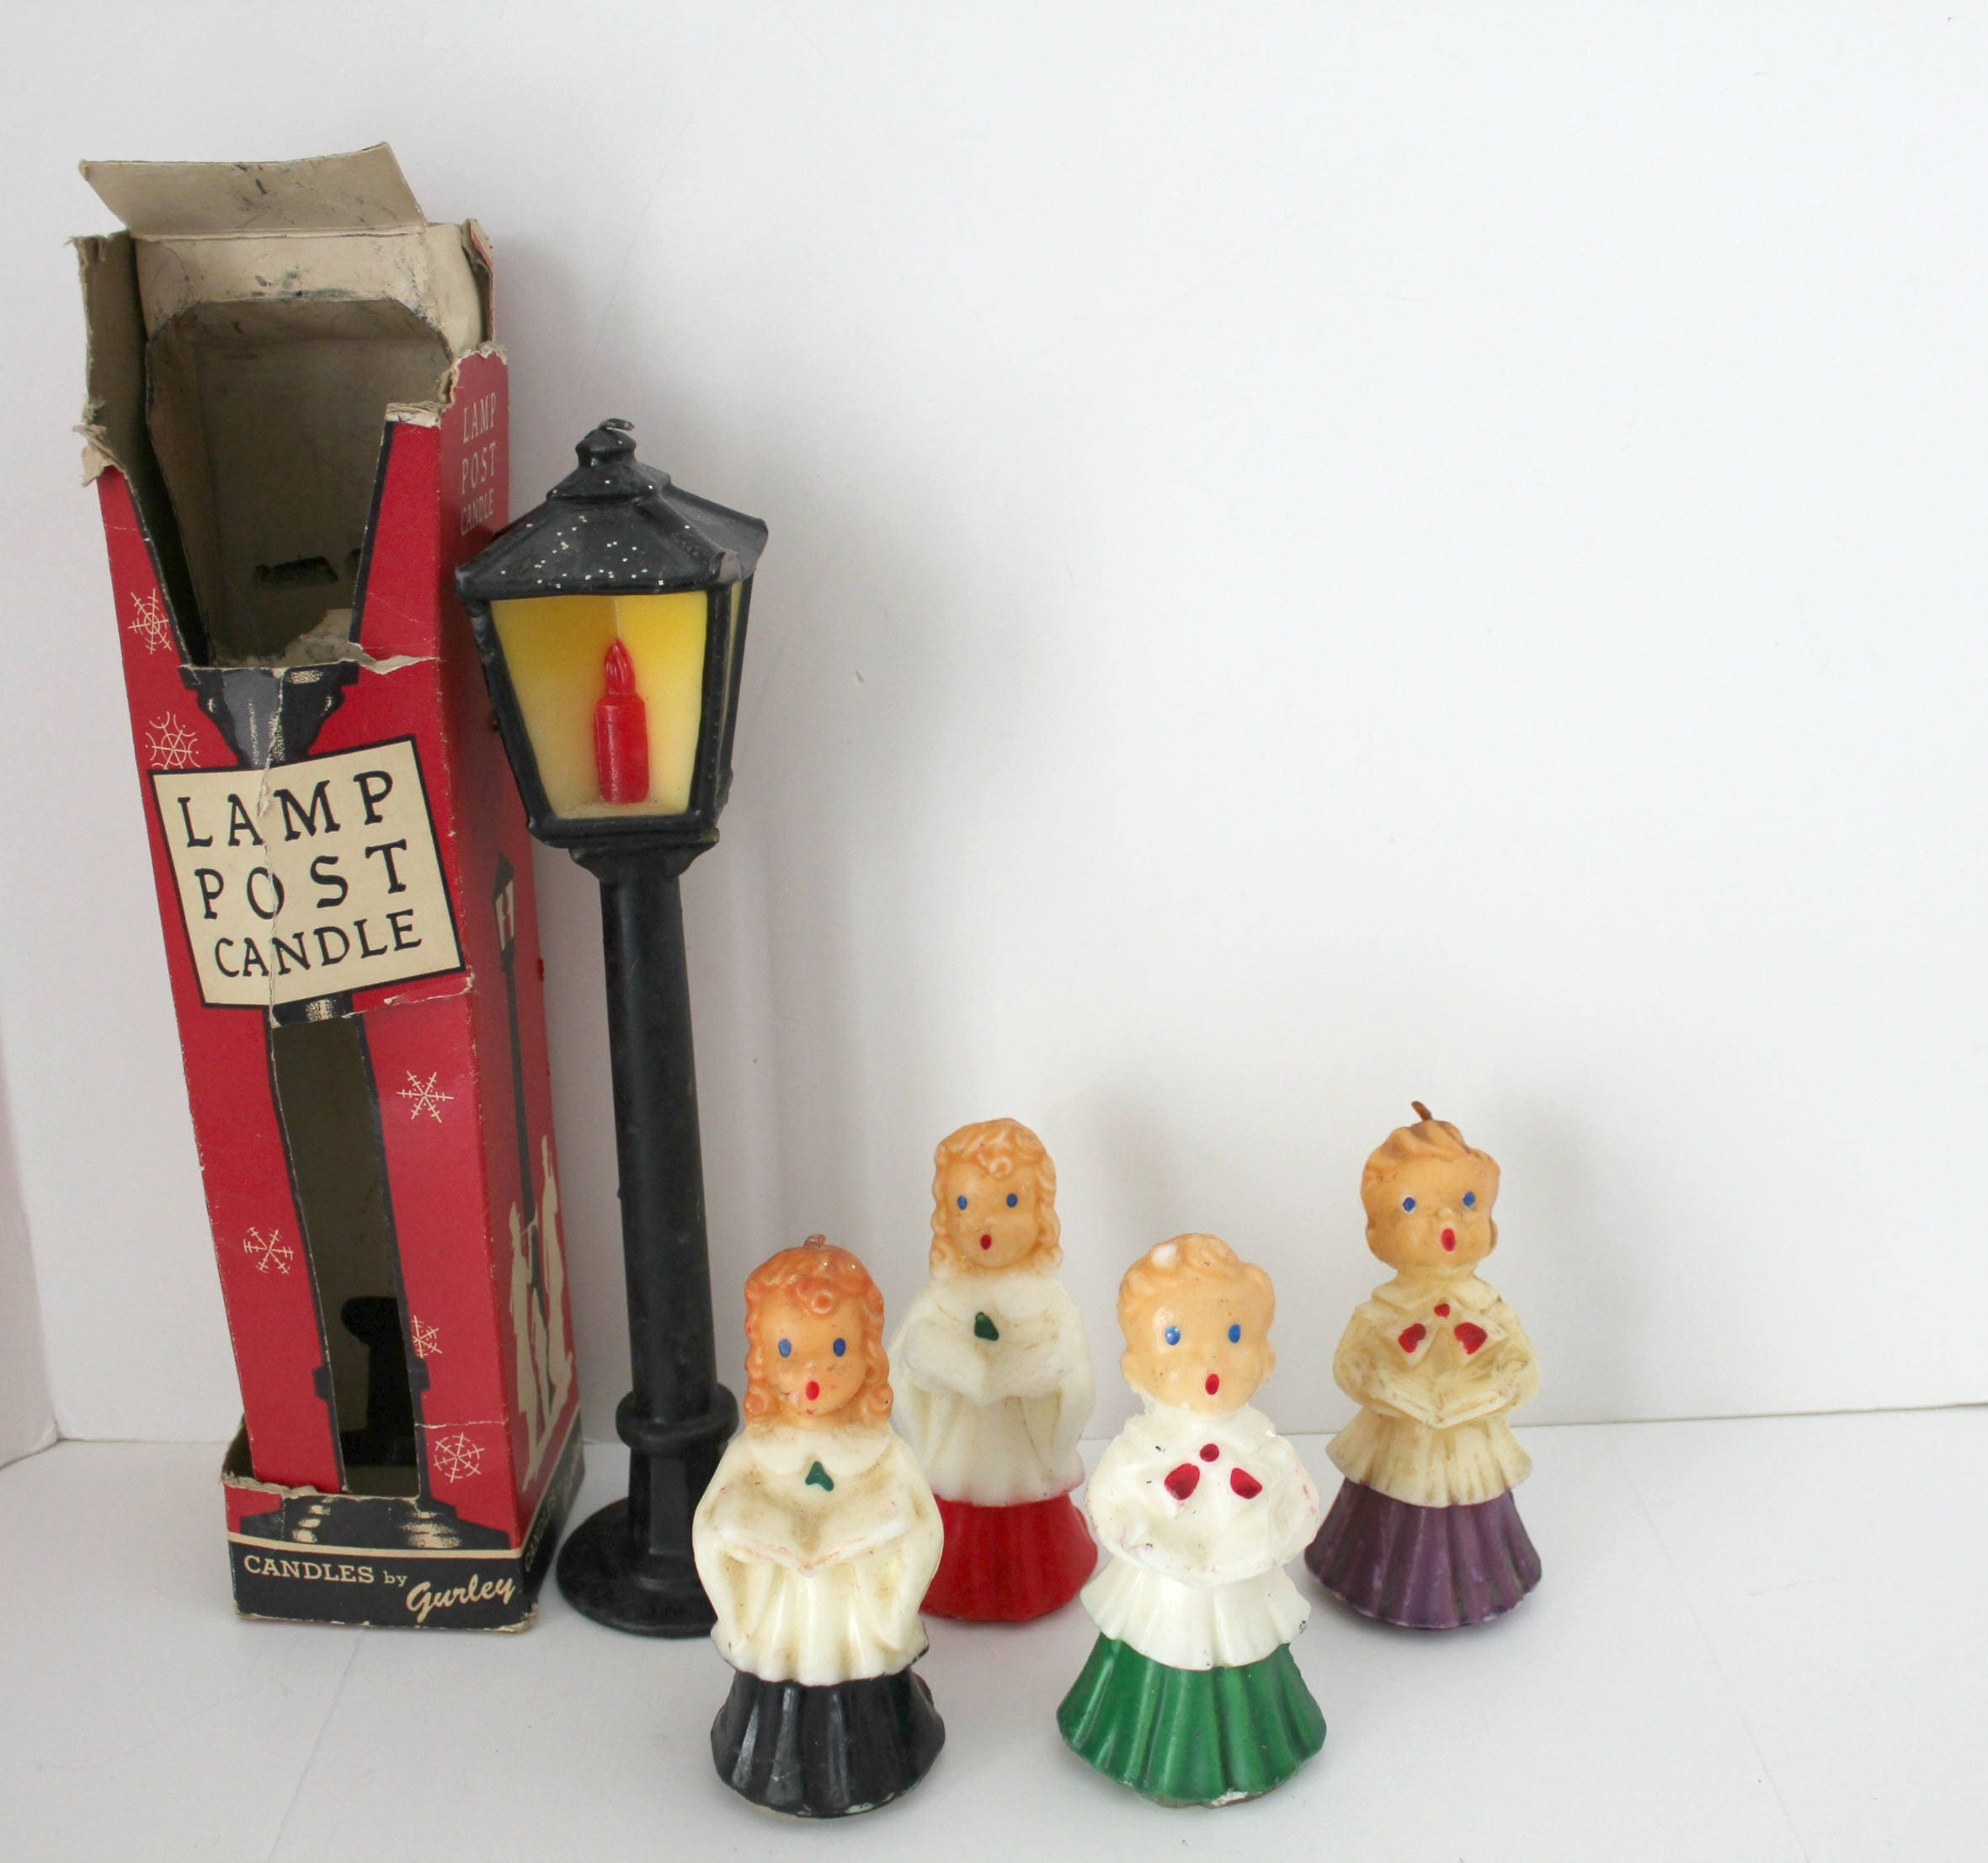 Vintage Ceramic Christmas Carolers Choir Boy And Girl: Vintage Large Lamp Post Gurley Candle With 4 Christmas